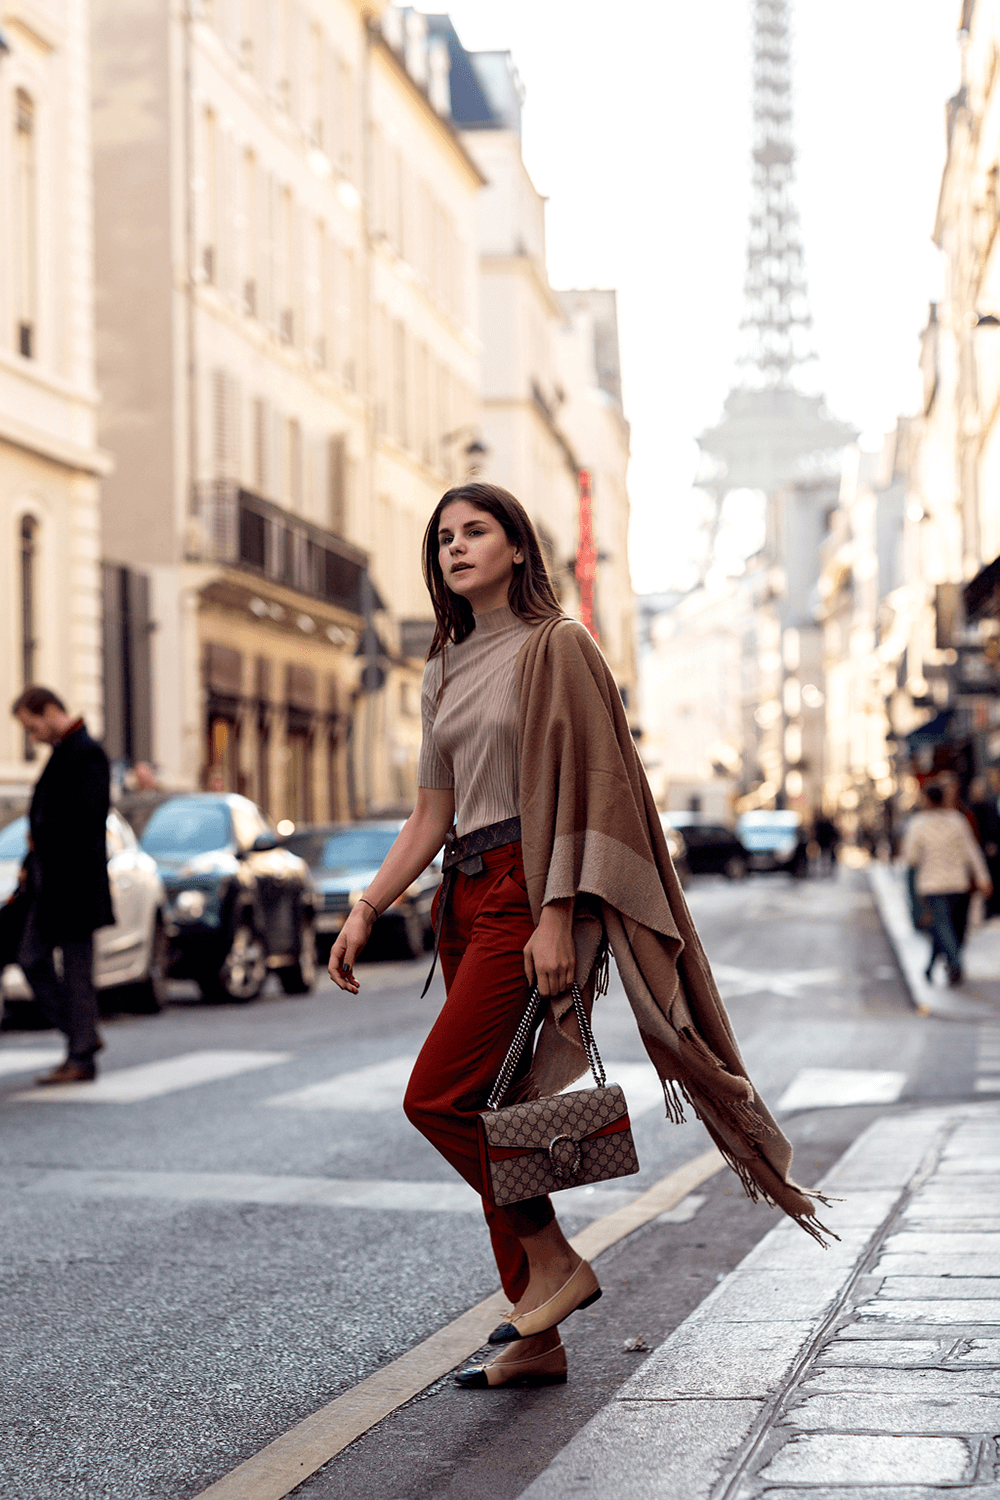 The-Fashion-Fraction-Paris-Outfit-Cape-Casual-Style-Gucci-Dionysus-Chanel-Louis-Vuitton-Tie-The-Know-12